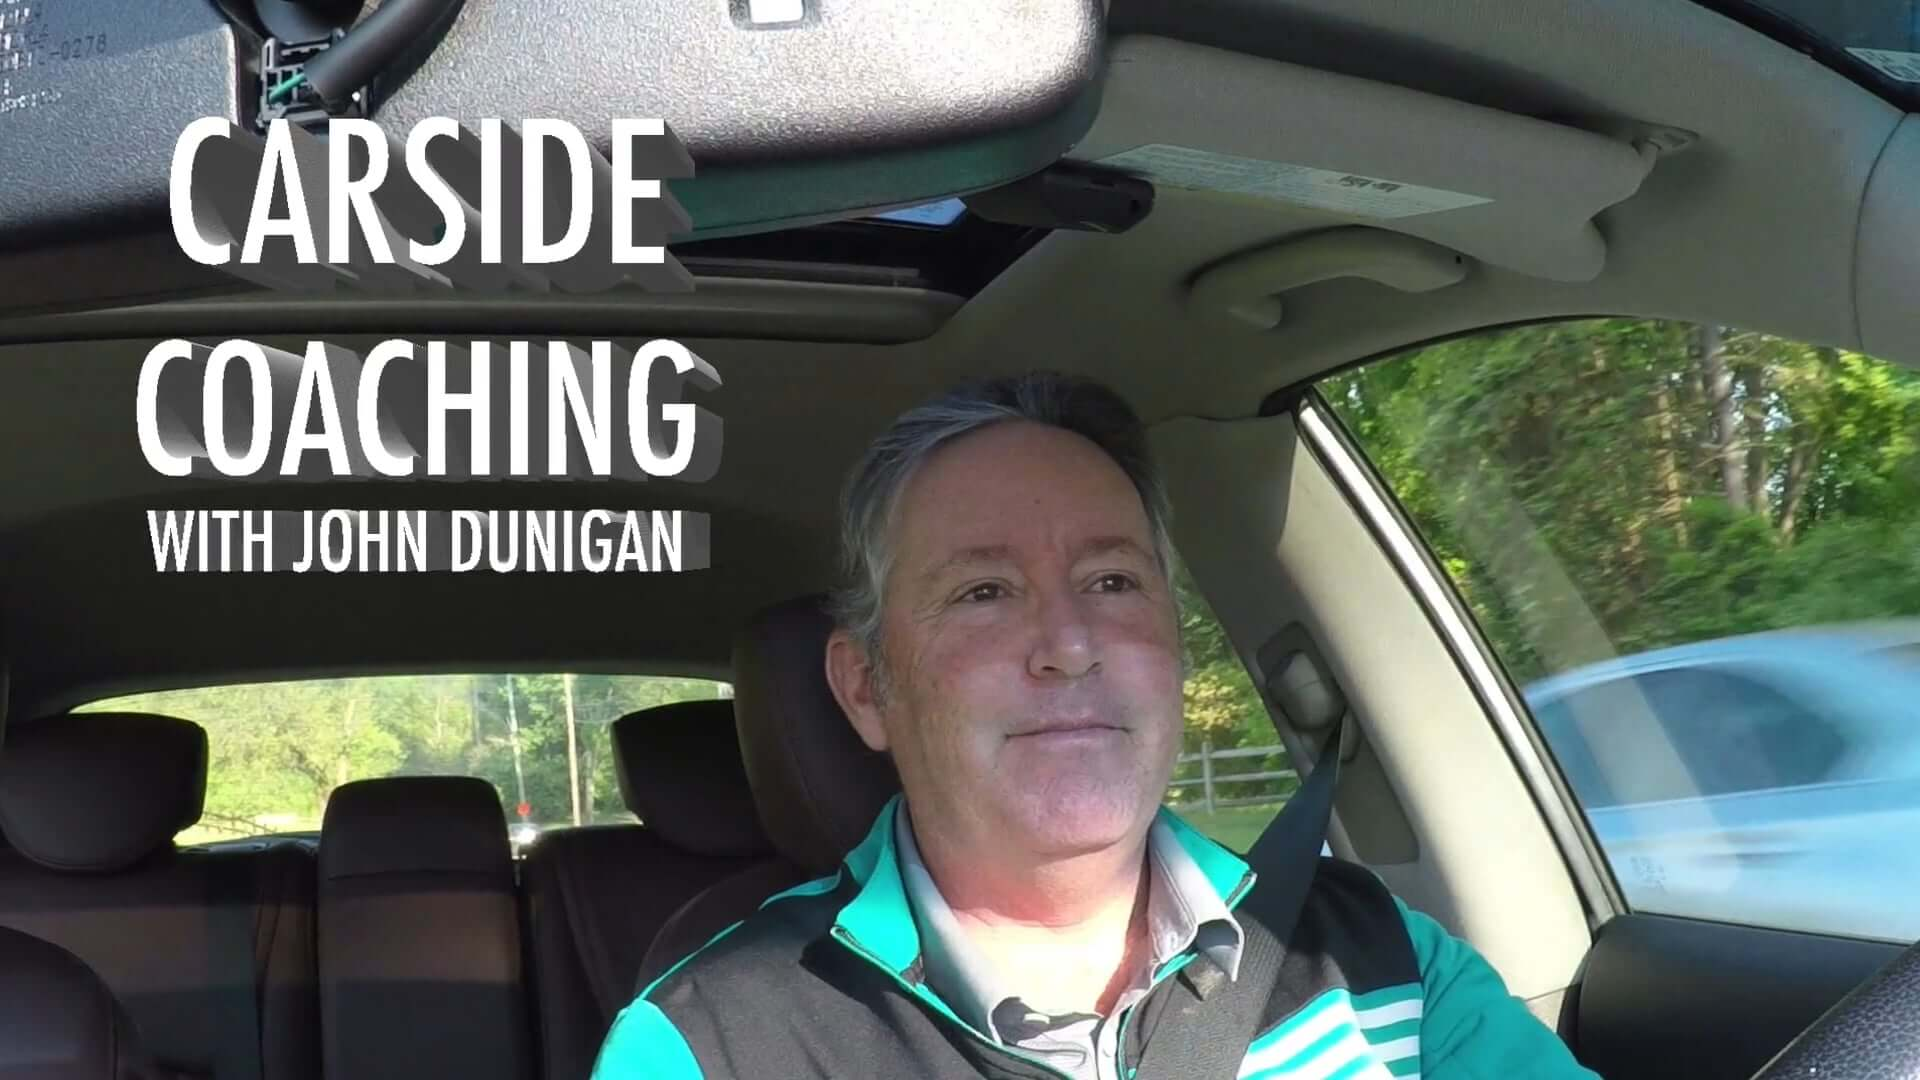 Carside Coaching with John Dunigan: Break 100/90